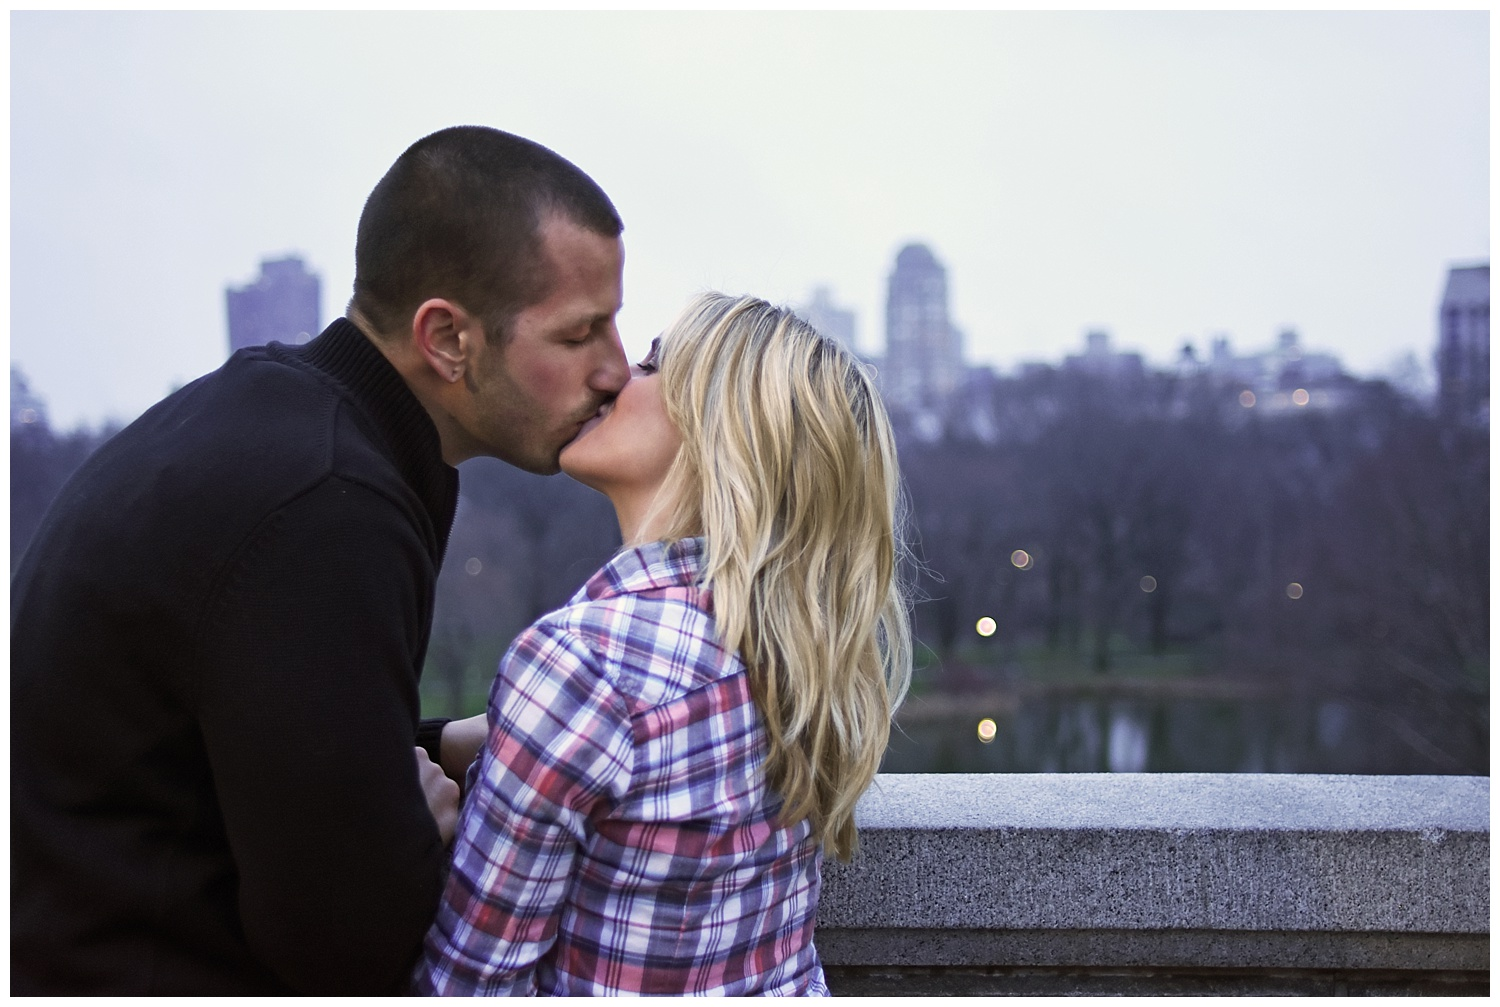 Couple Kissing | Central Park Engagement Photographer | Bethesda Fountain Wedding Photographer | Farm Wedding Photographer | Apollo Fields Wedding Photojournalism